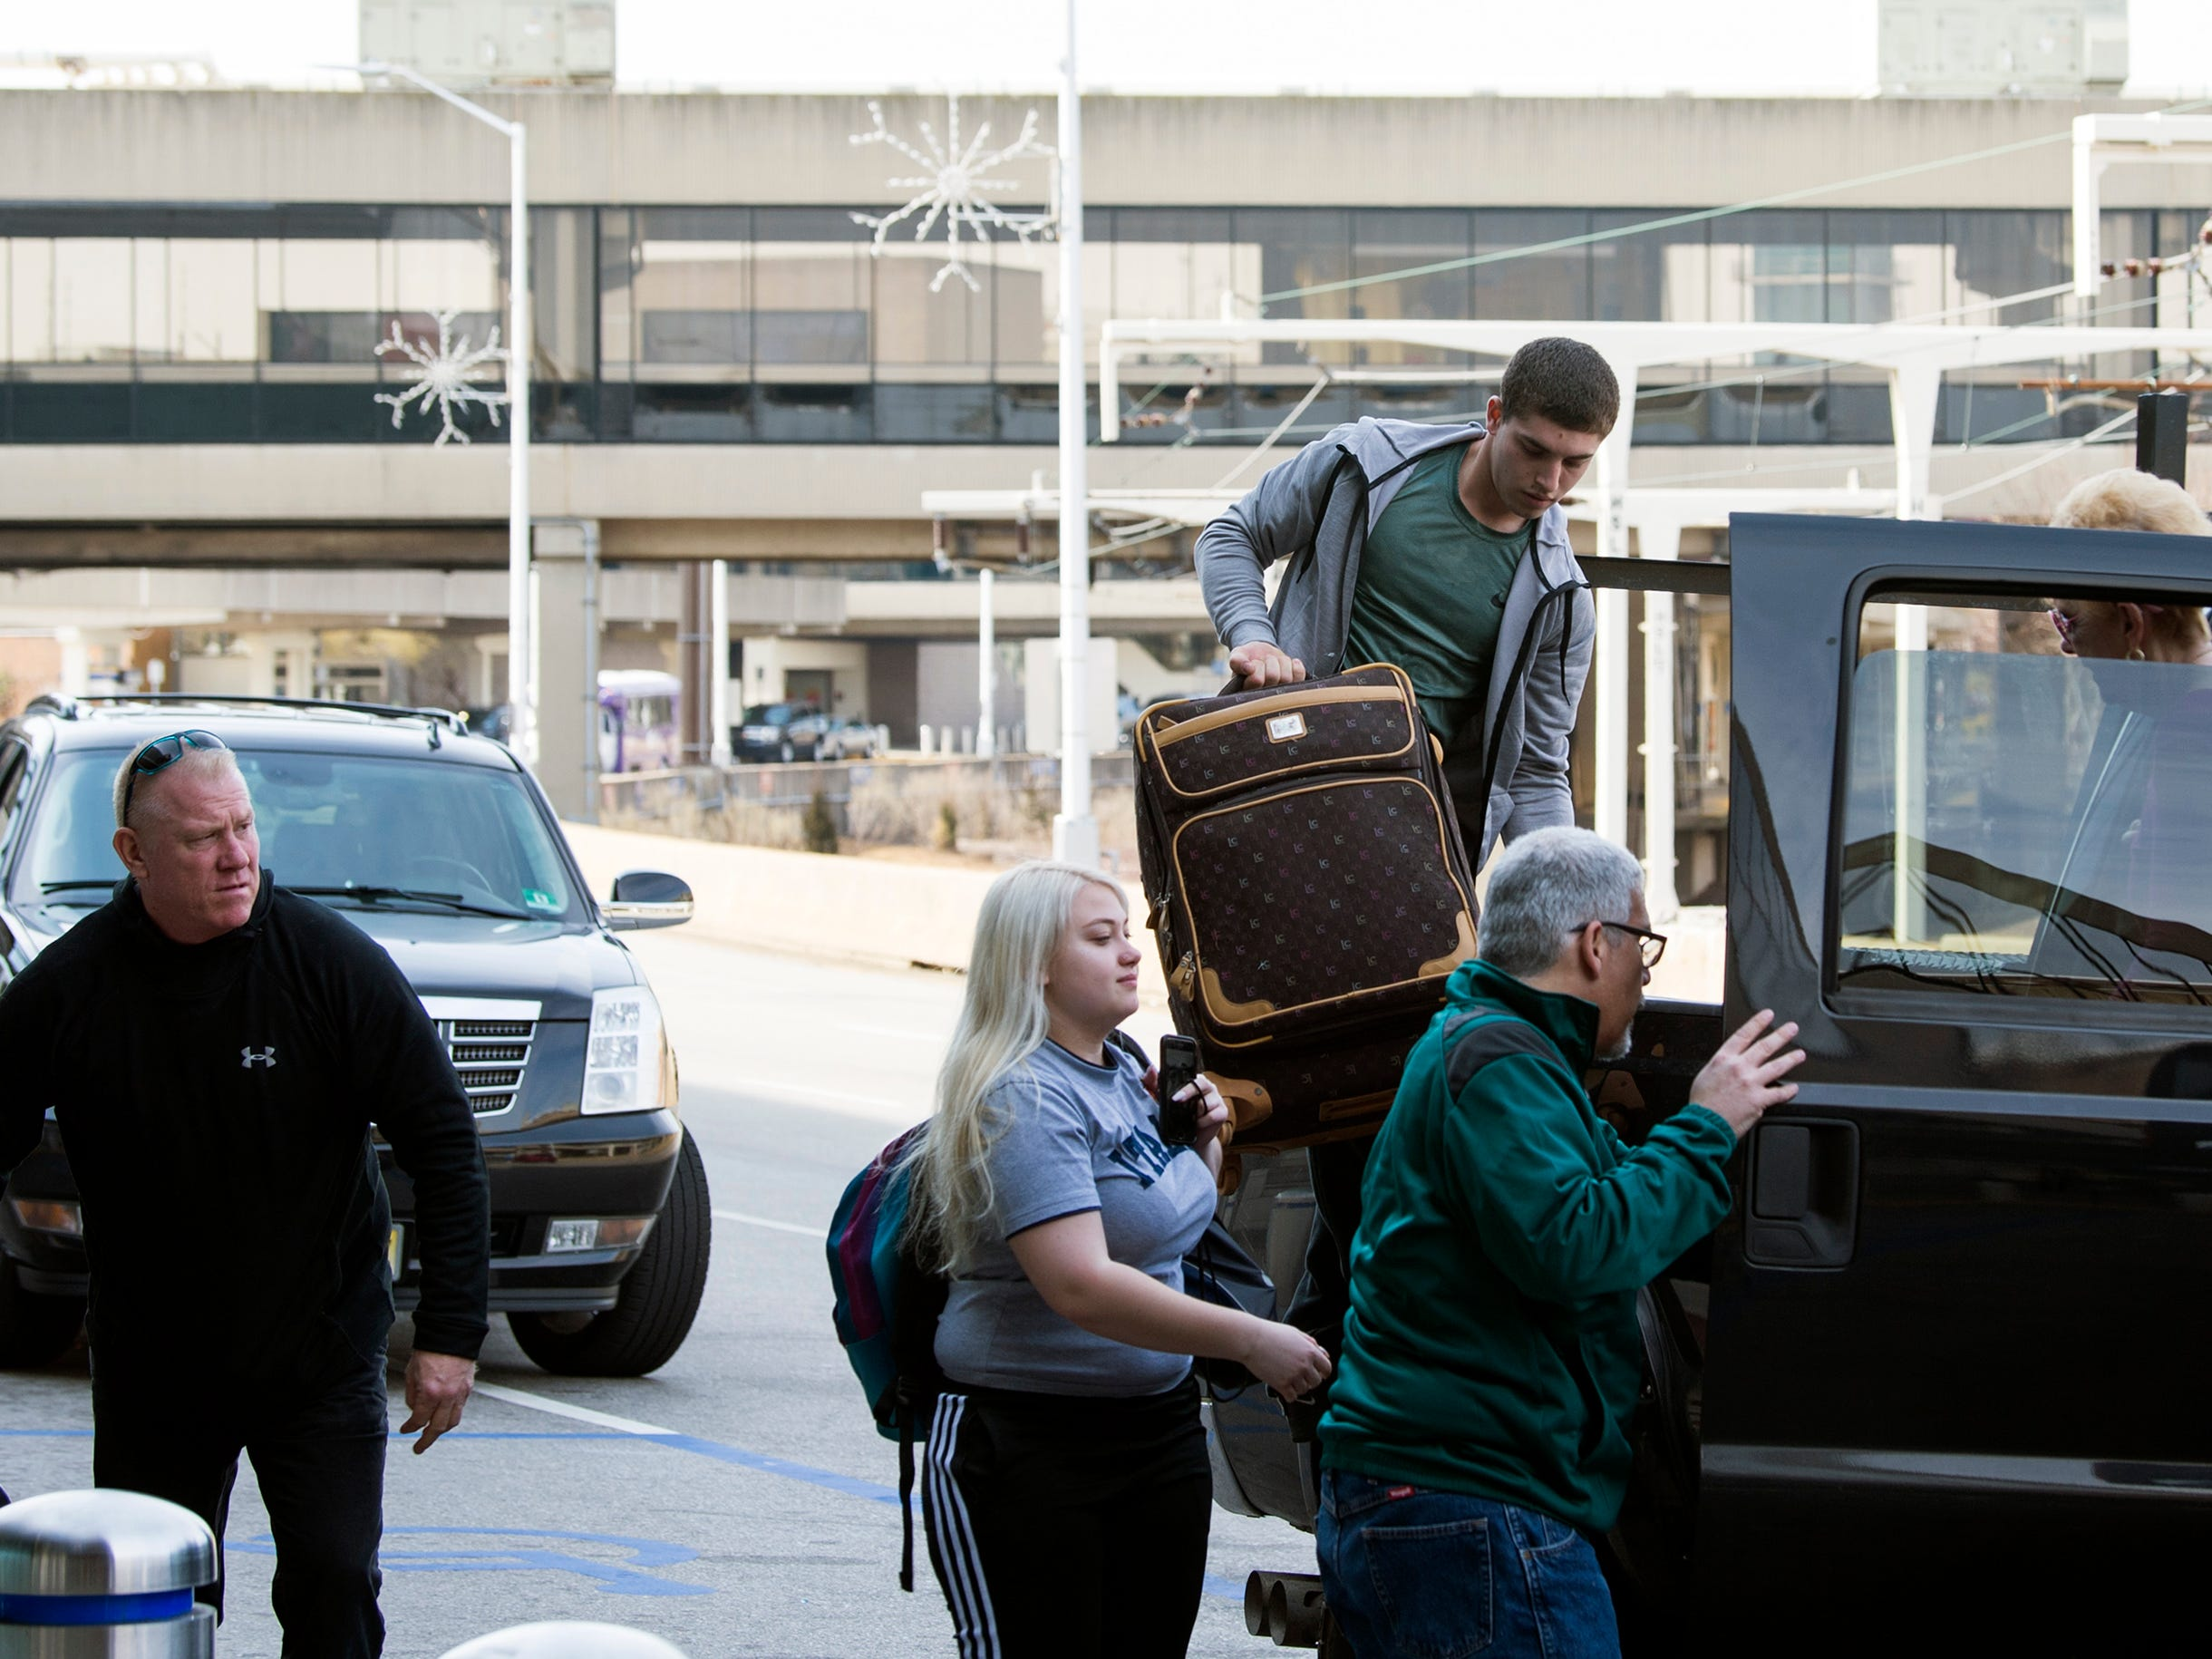 Travelers gather their luggage Thursday, March 14, 2019 at Philadelphia International Airport in Philadelphia, Pa.